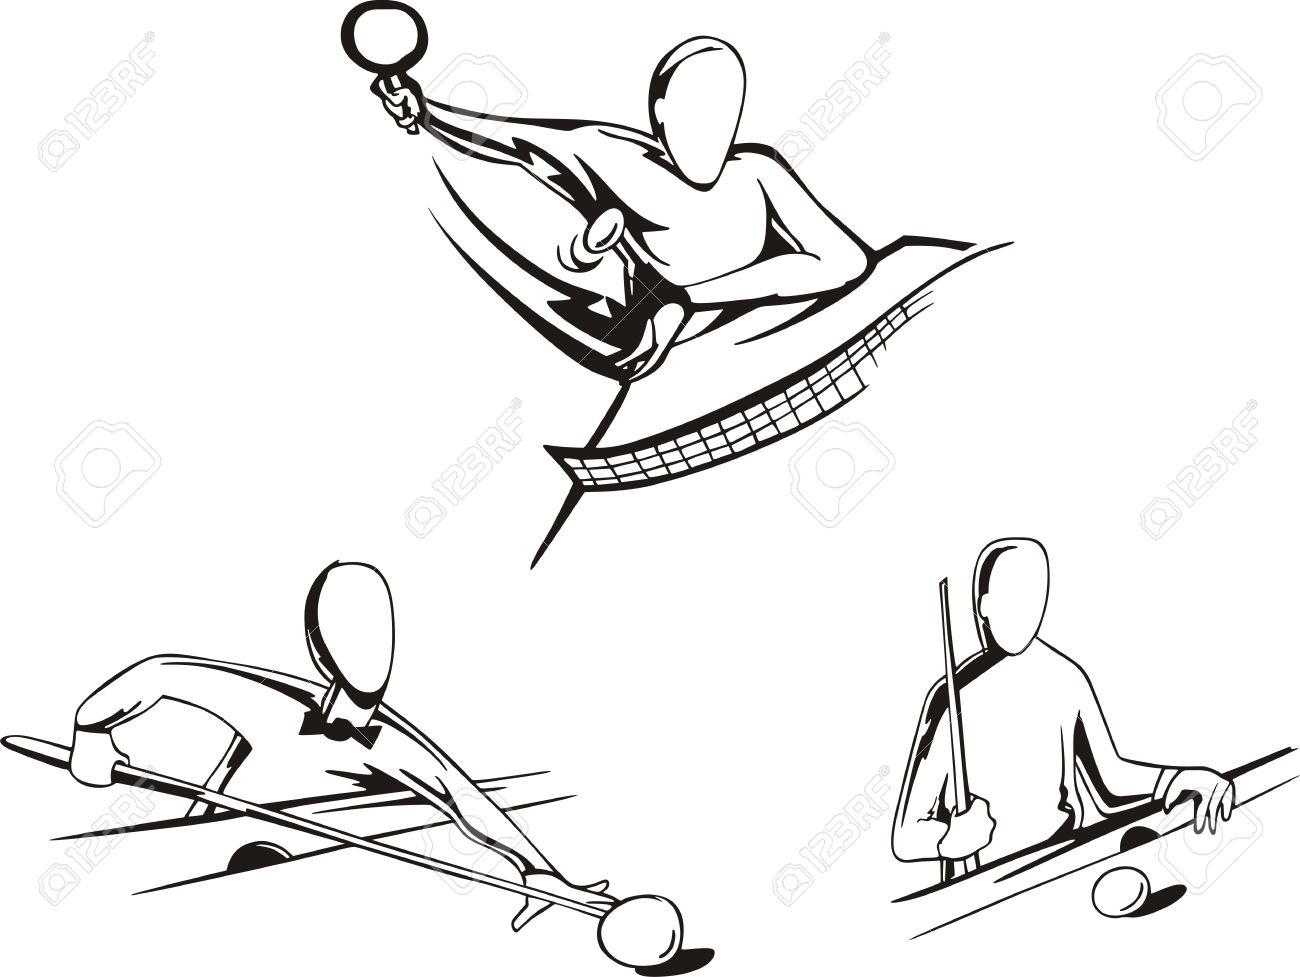 1300x977 Pool And Tennis Table Set Of Black And White Illustrations Royalty